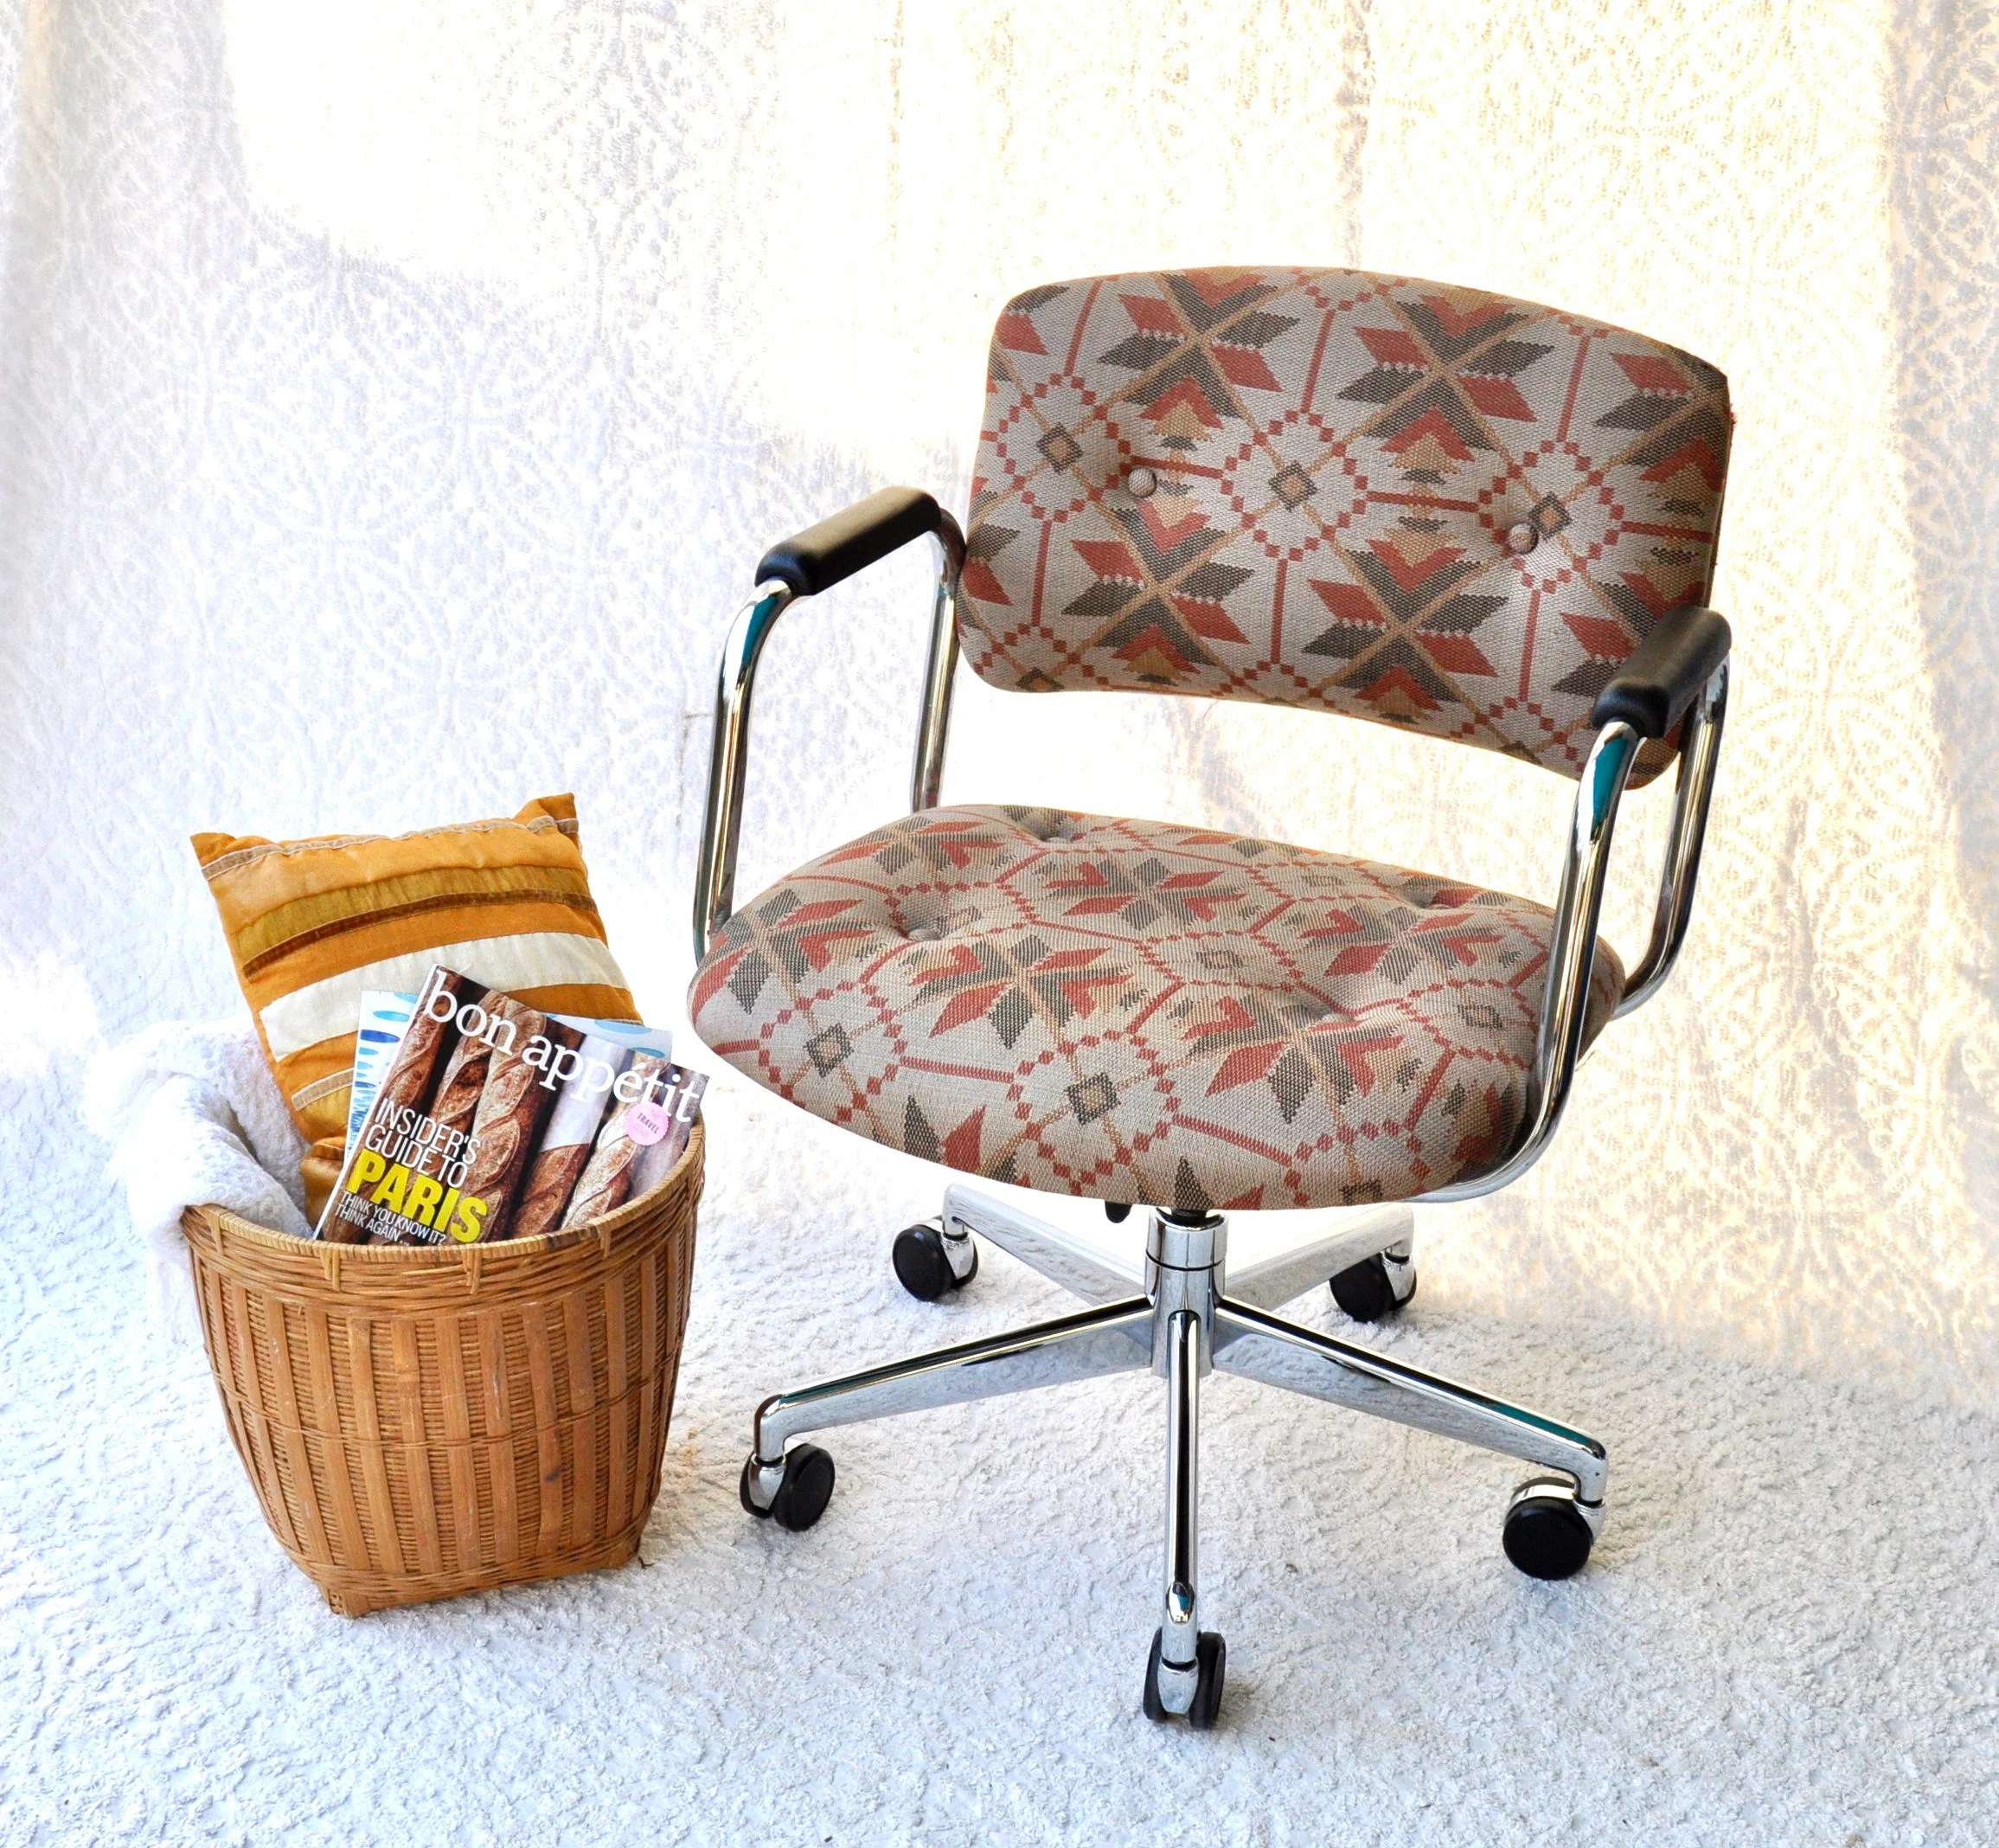 adjustable desk chairs baby at walmart vintage united chair co bohemian pattern swivel etsy image 0